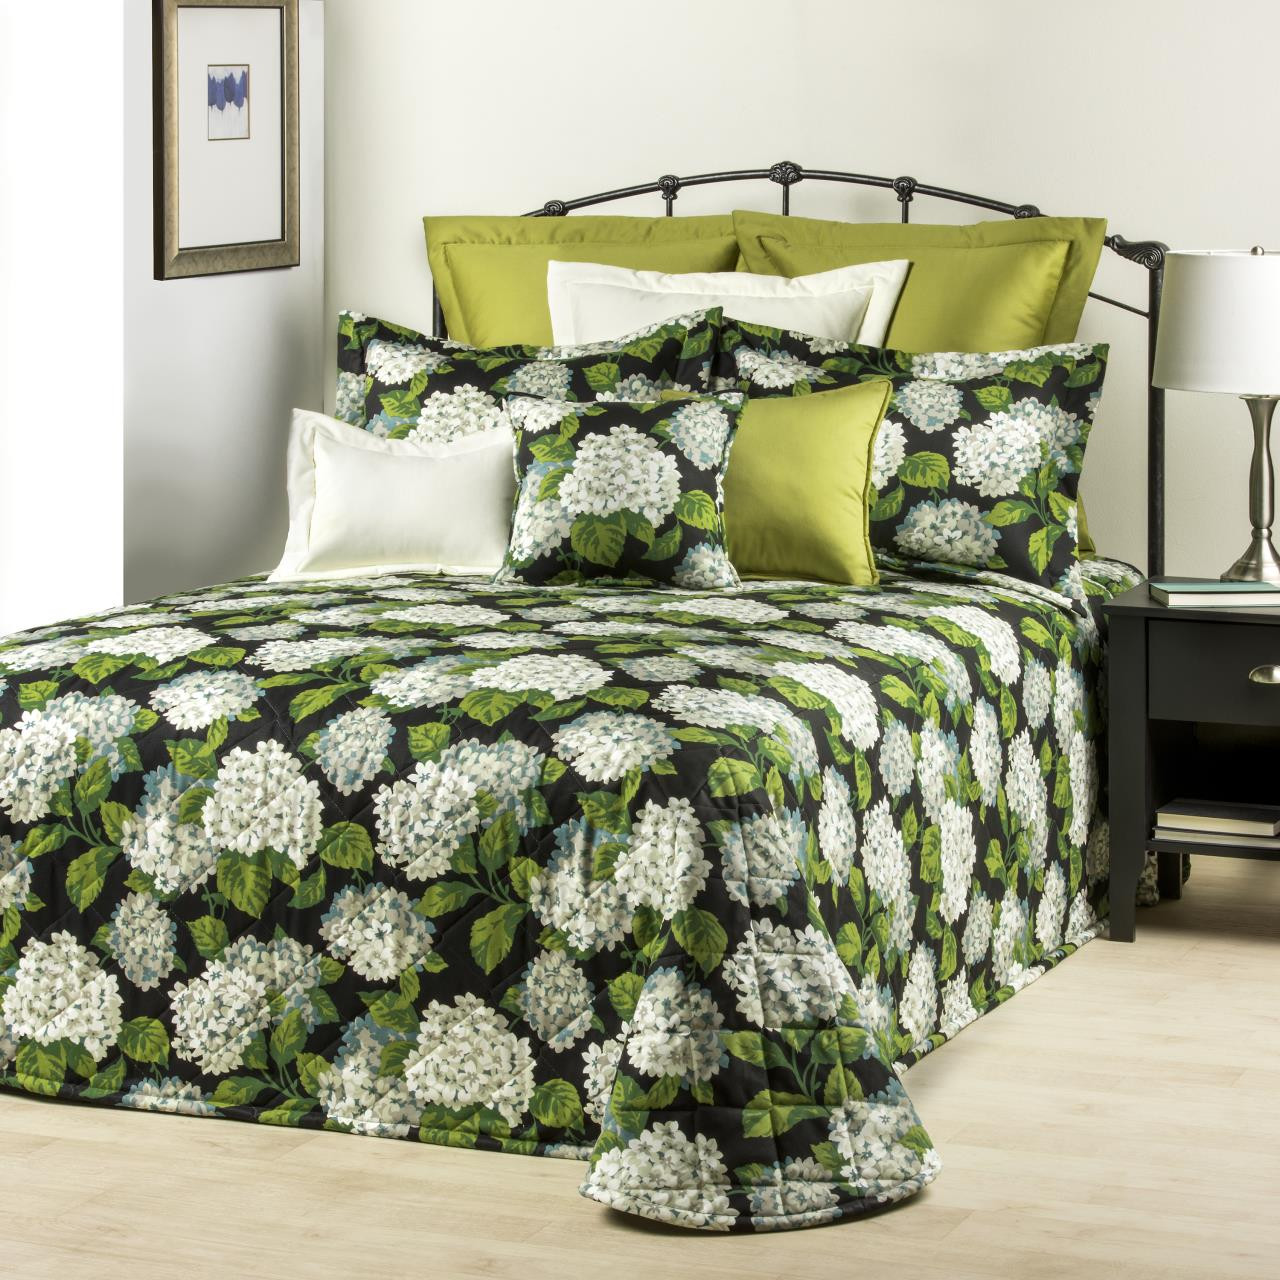 Hydrangea Onyx Bedding Collection By Thomasville Paul S Home Fashions